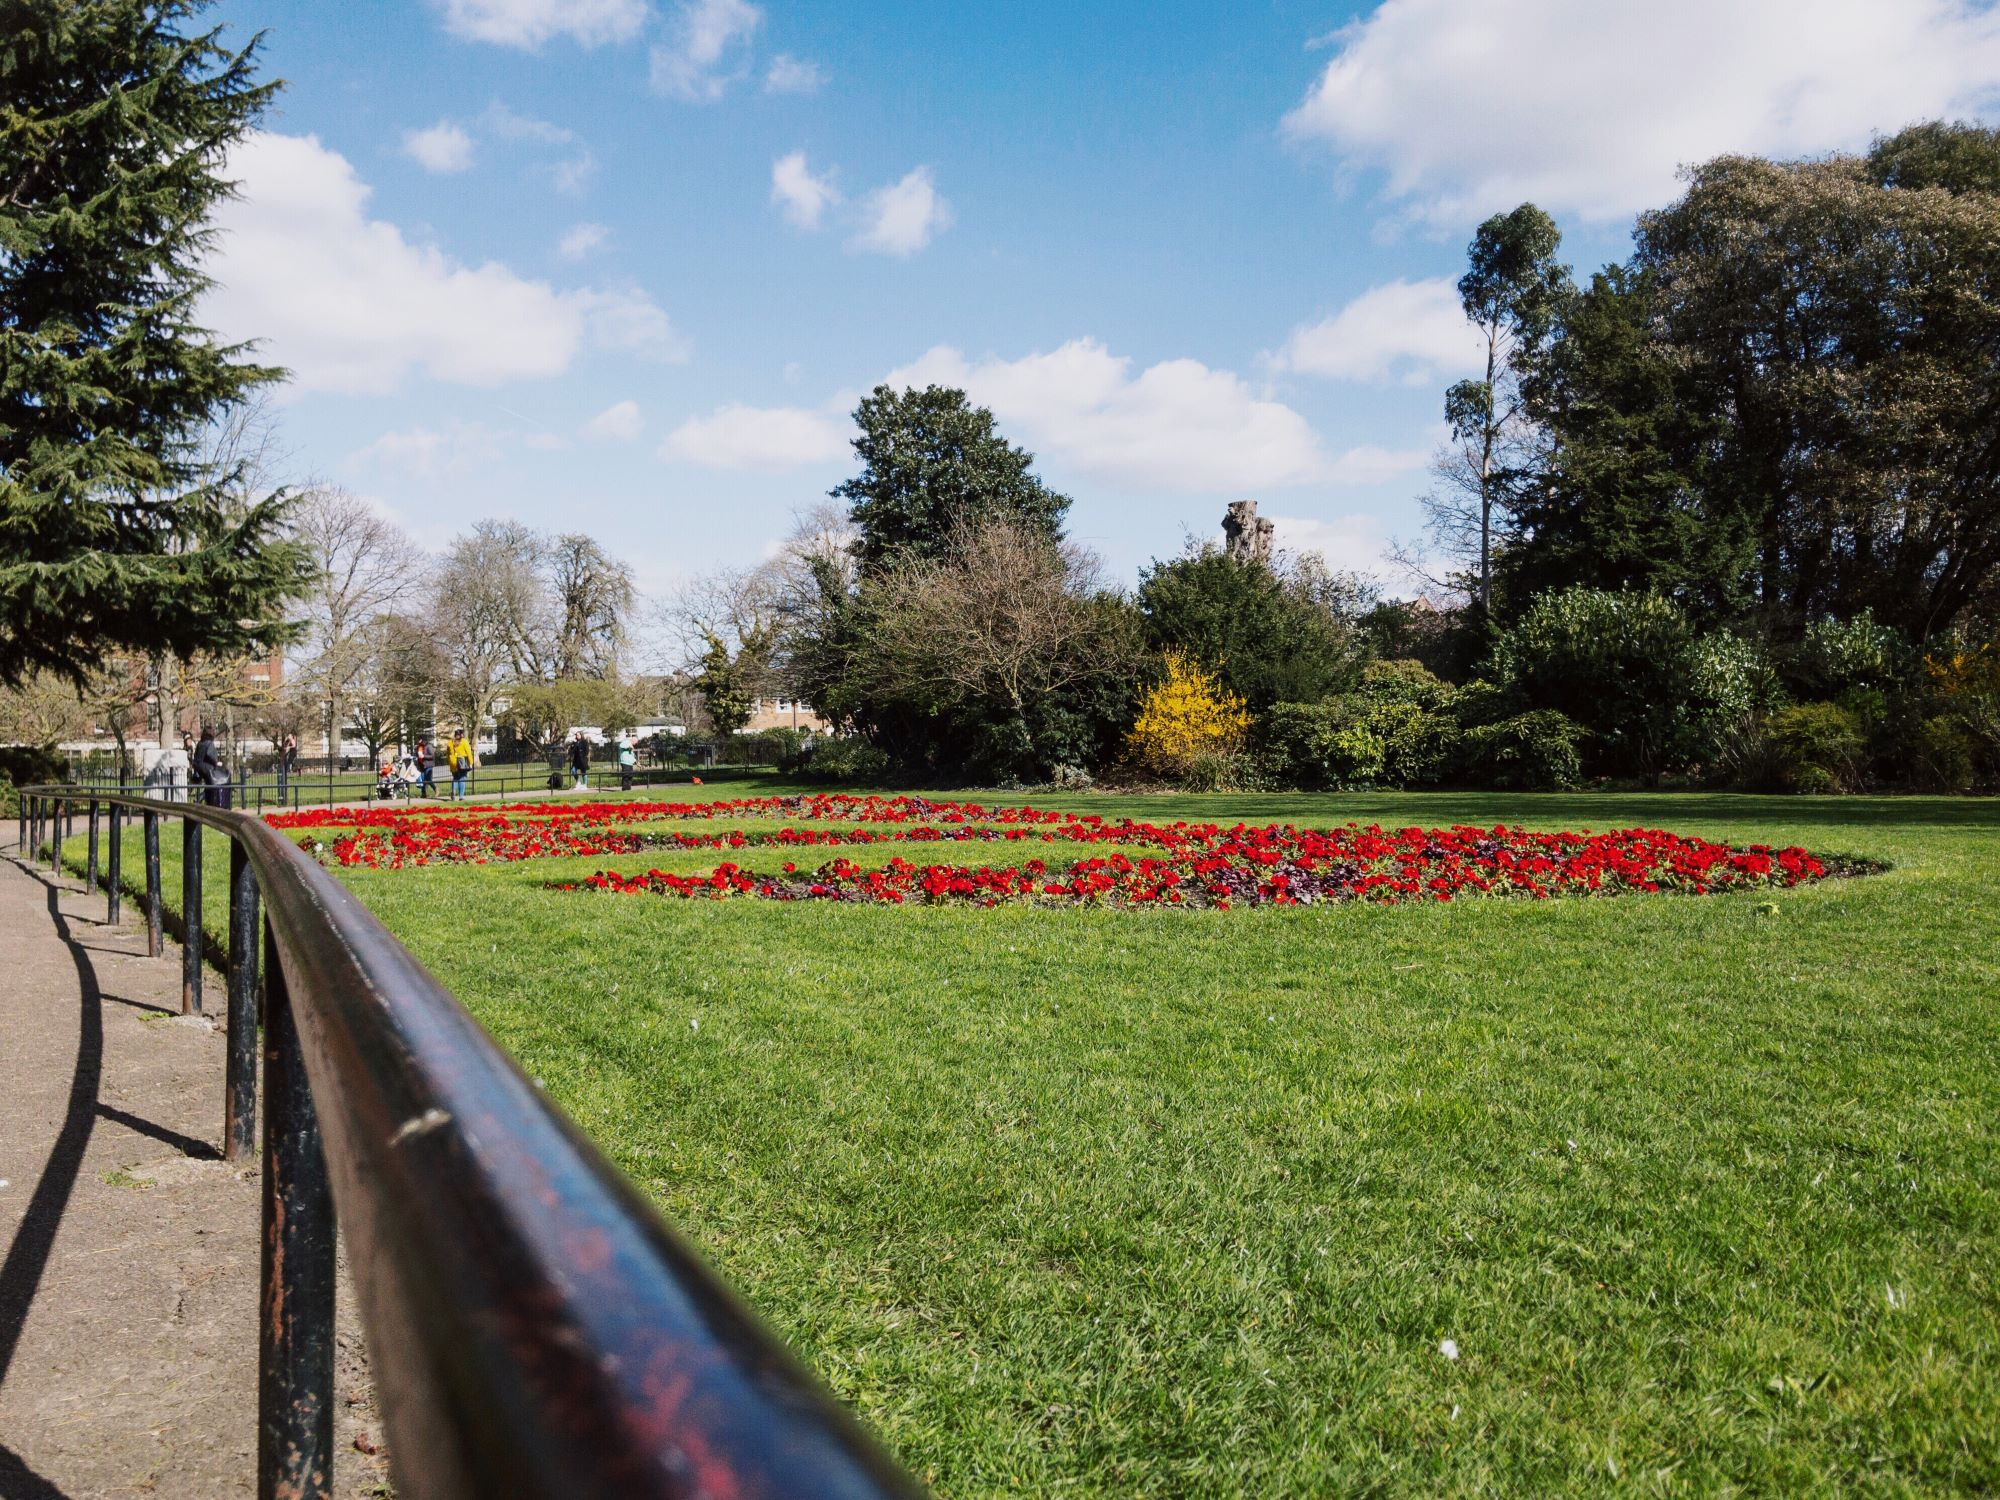 Ravenscourt Park Flower Beds.JPG